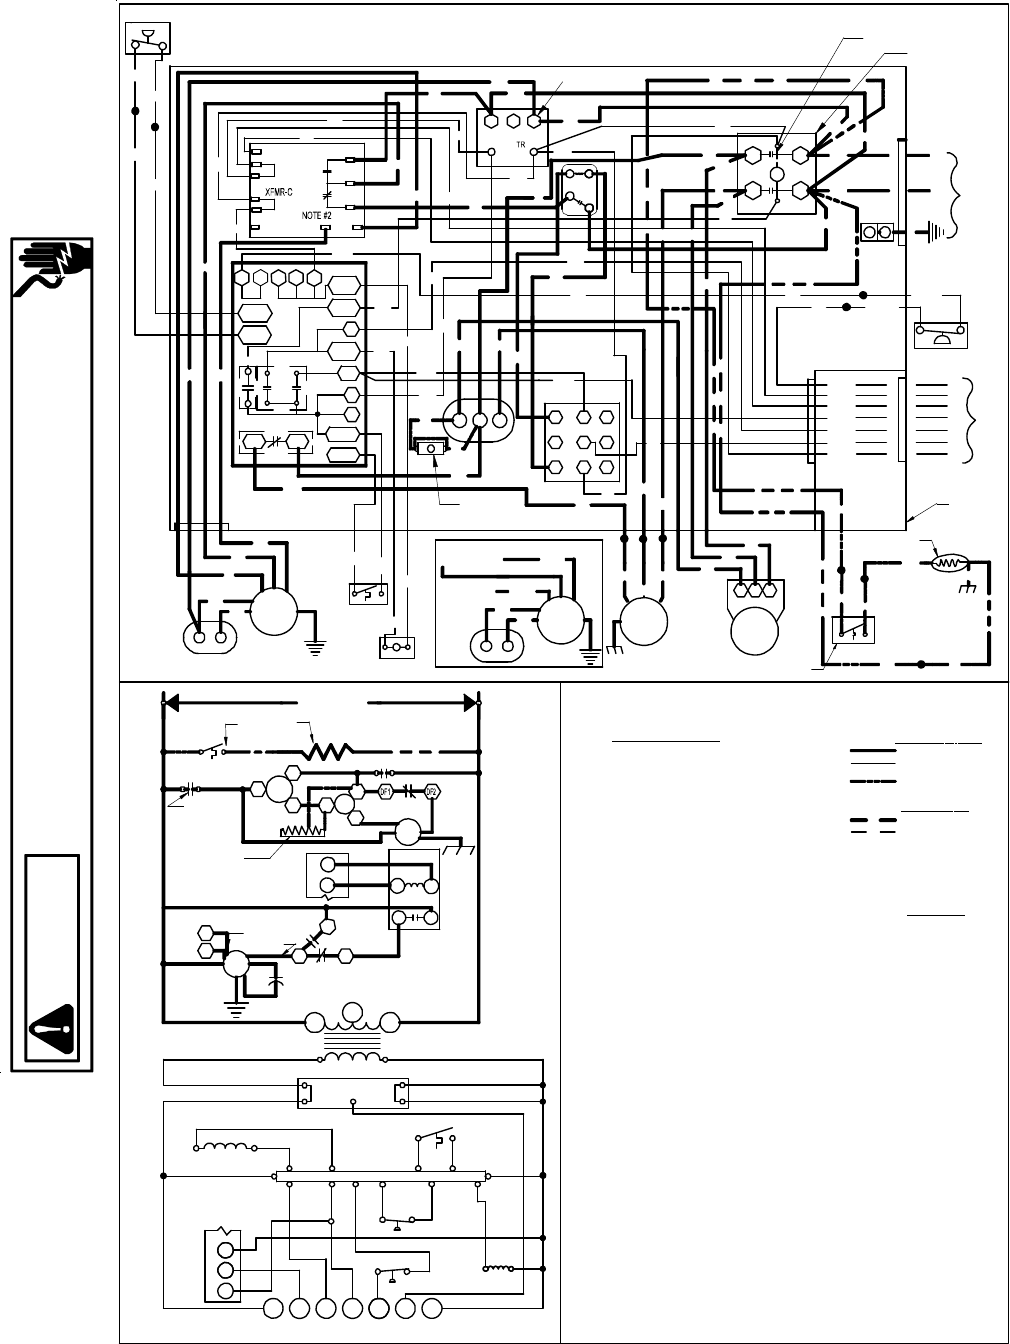 page 27 of goodman mfg heat pump rt6332013r1 user guide manualsonline com goodman wiring schematic gms80 Goodman Electric Heat Strips Wiring